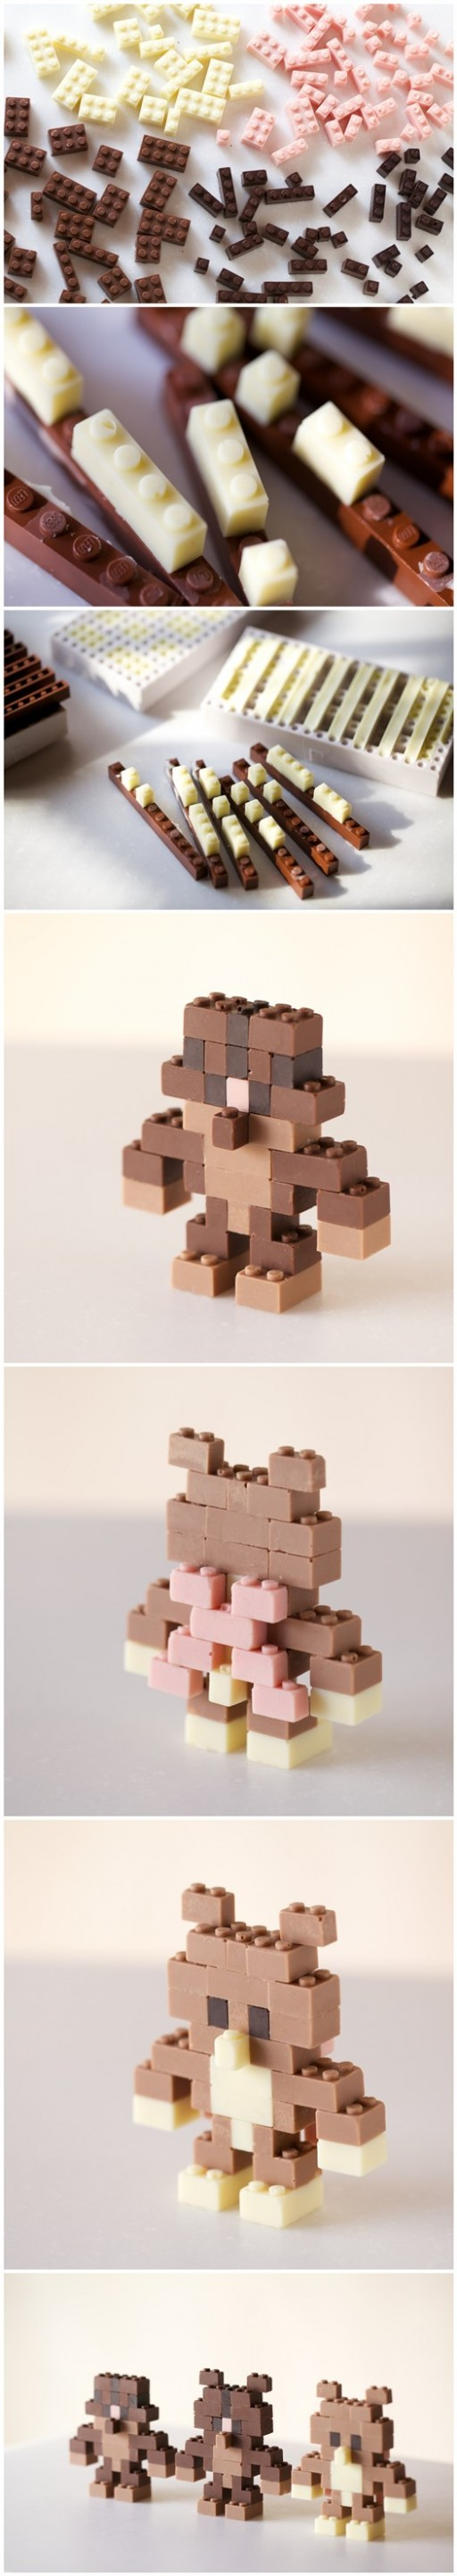 These Cute Chocolate Legos Are Going To Melt You 2